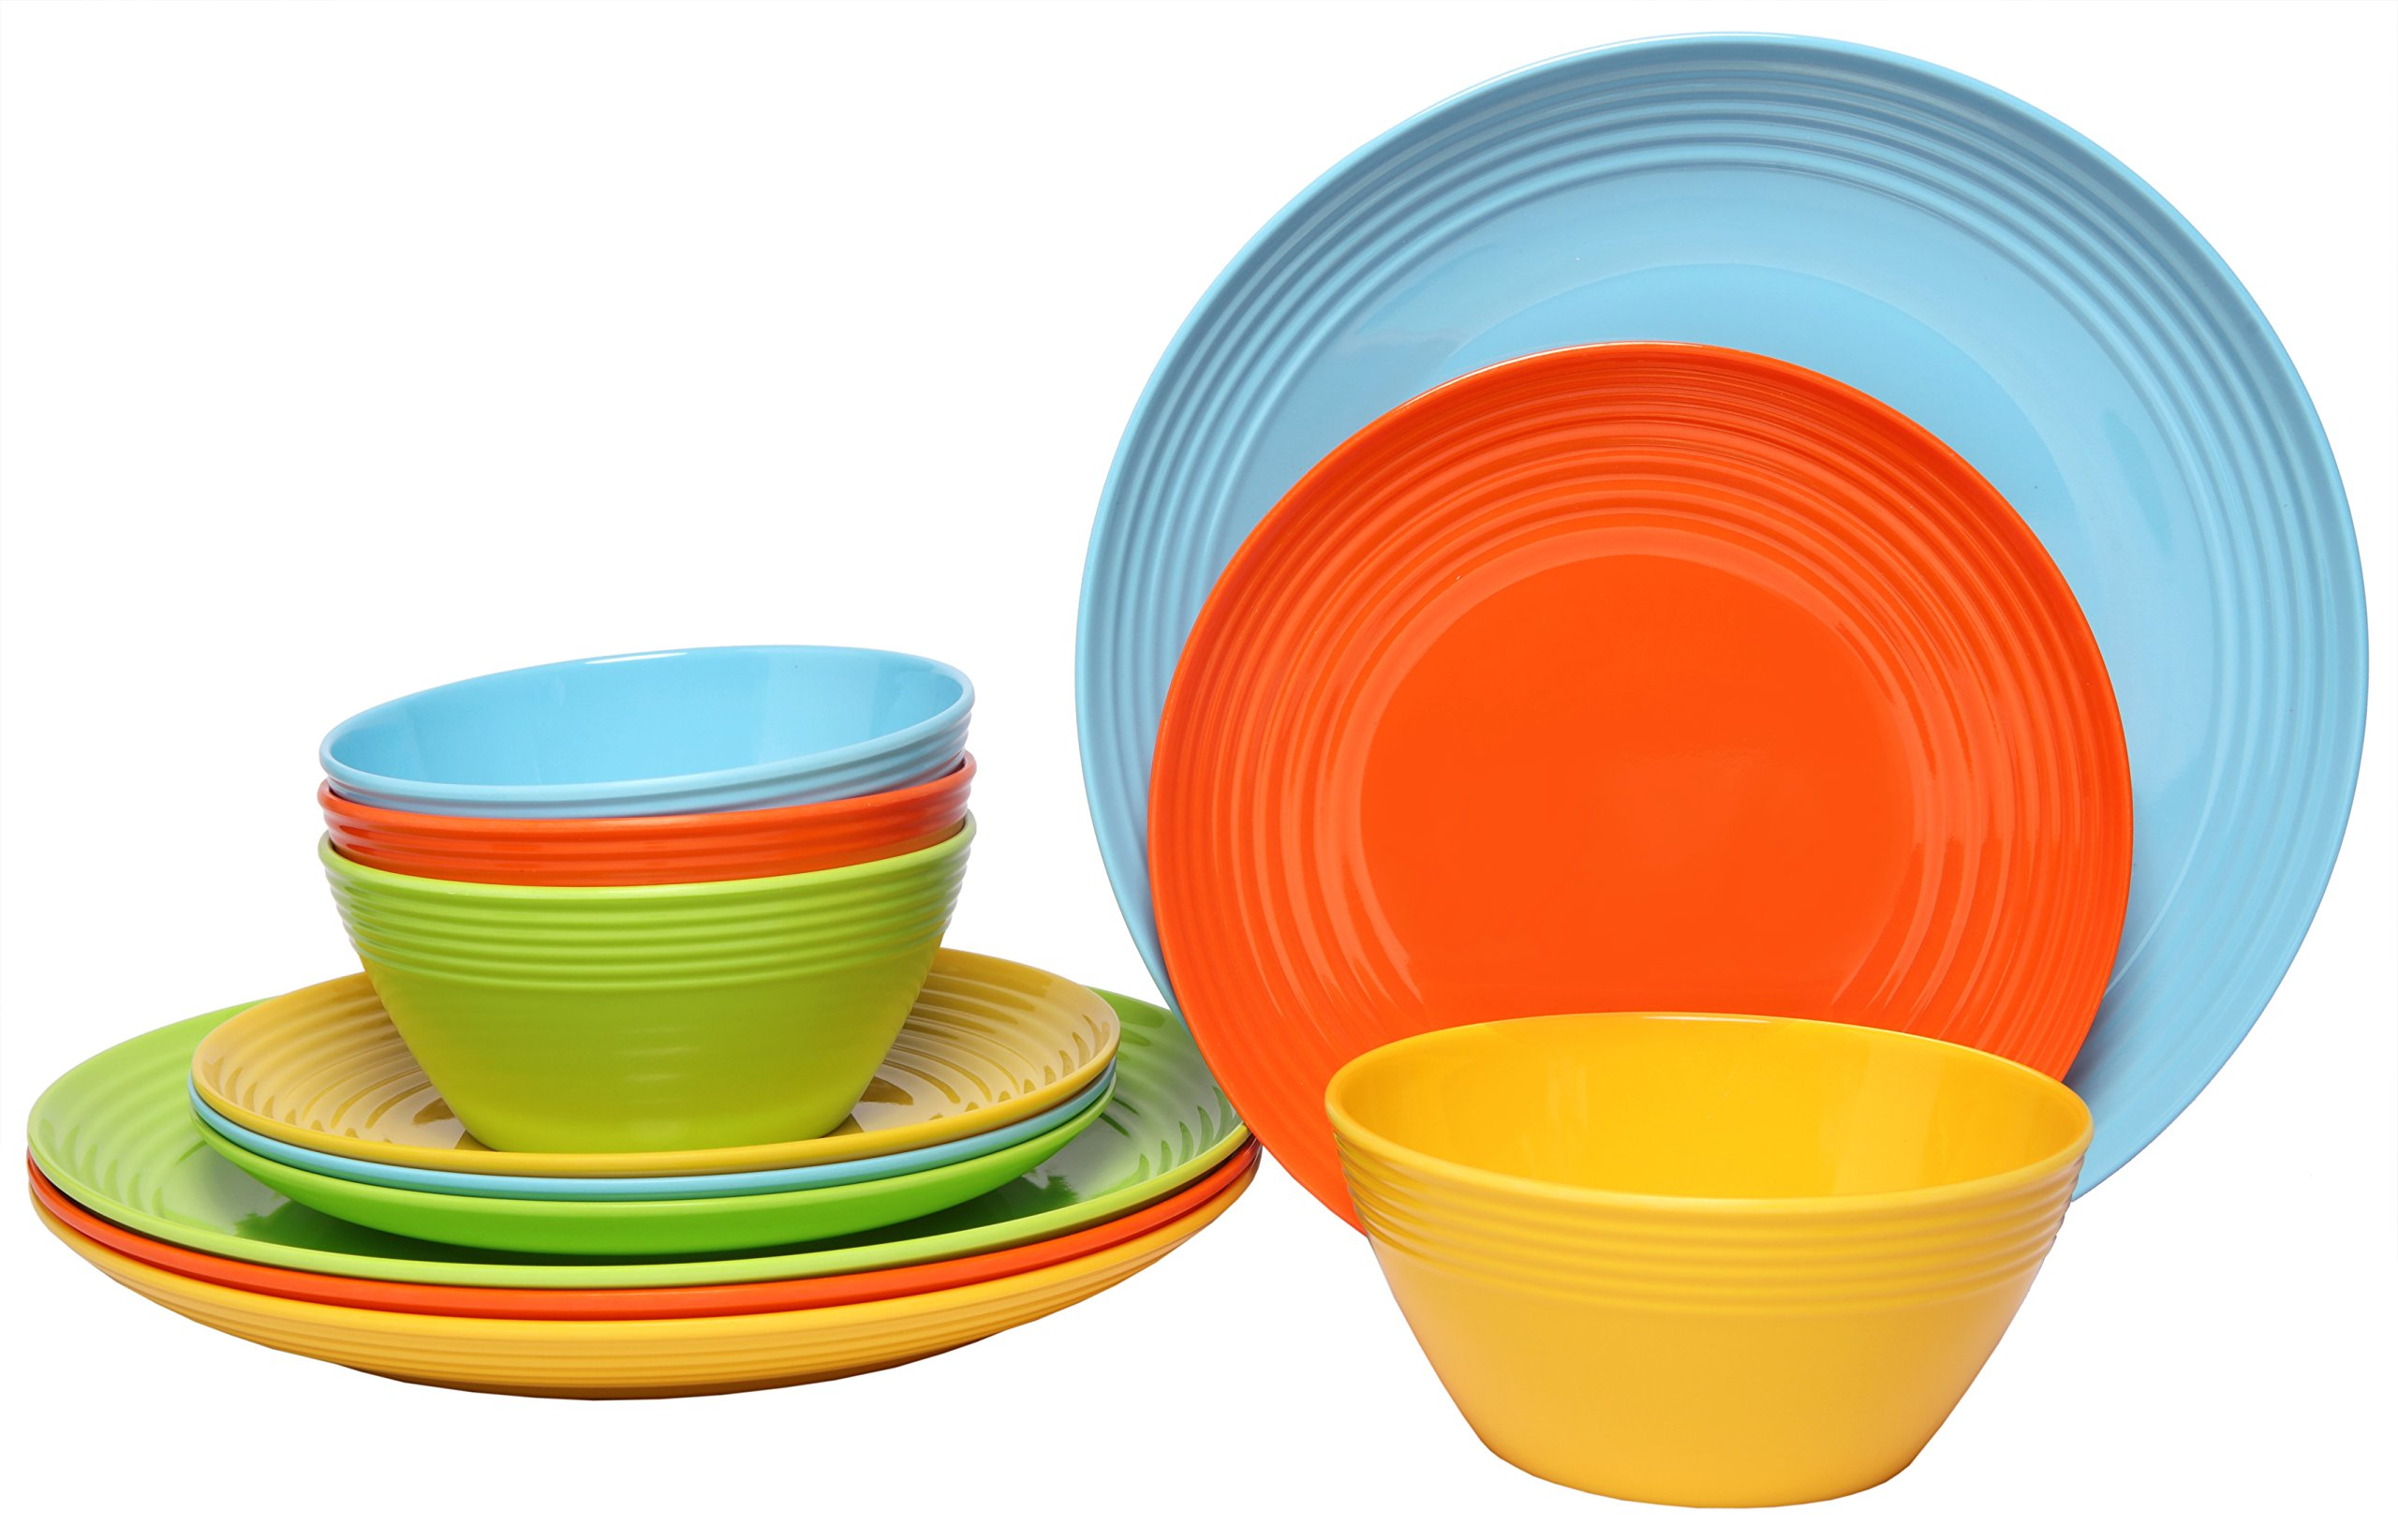 Melange 12-Piece Melamine Dinnerware Set (Solids Collection) | Shatter-Proof and Chip-Resistant Melamine Plates and Bowls | Color: Multicolor | Dinner Plate, Salad Plate & Soup Bowl (4 Each)